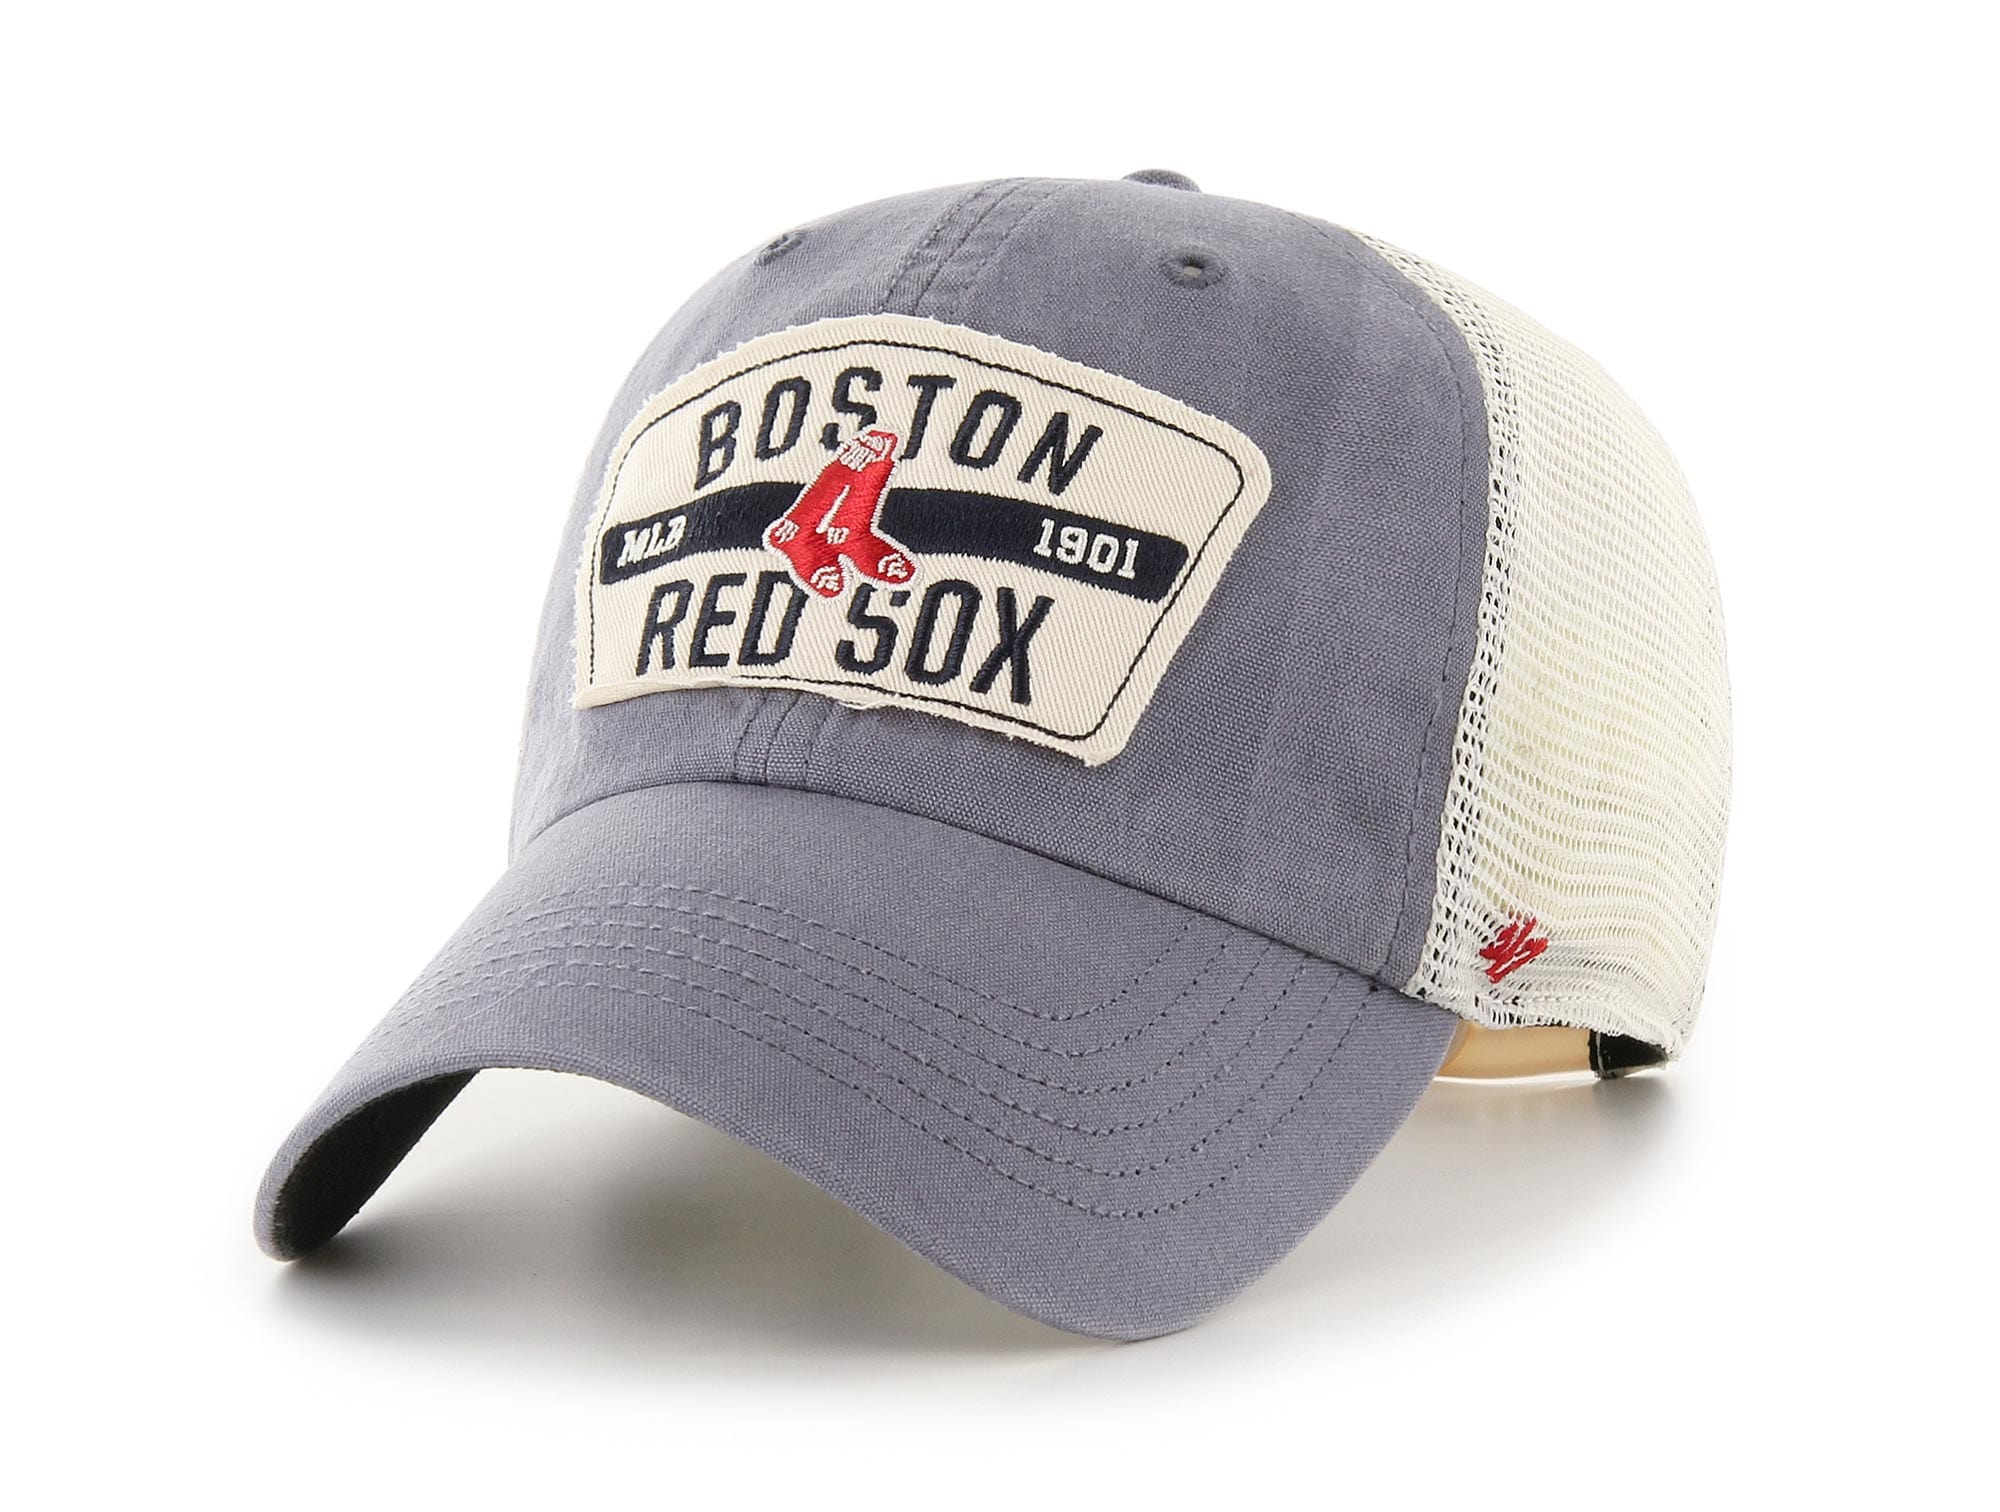 Jockey 47 Boston Red Sox Cooperstown Hombre Gris